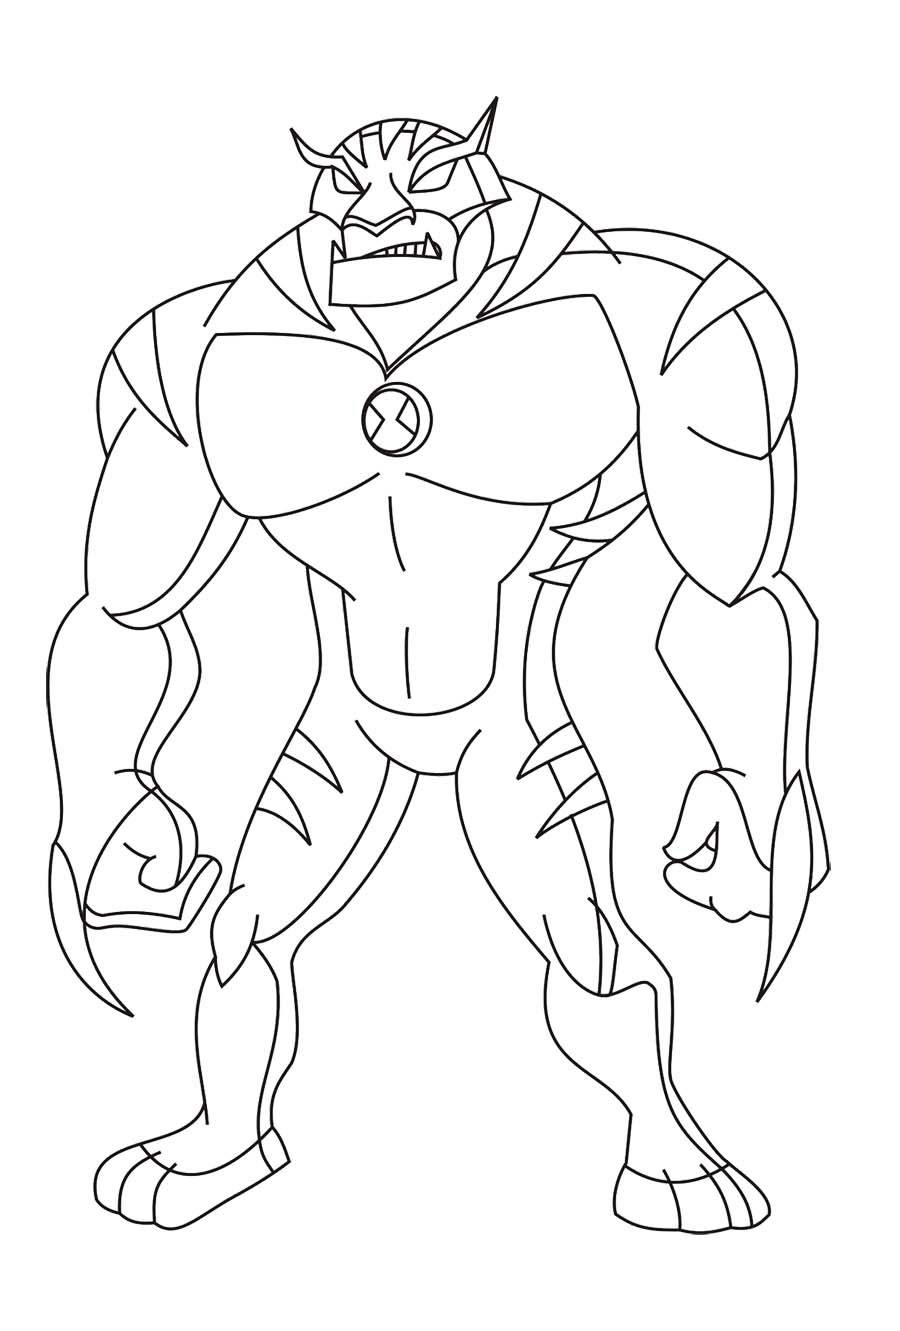 rath alien change ben ten coloring page - Ben Ten Coloring Pages